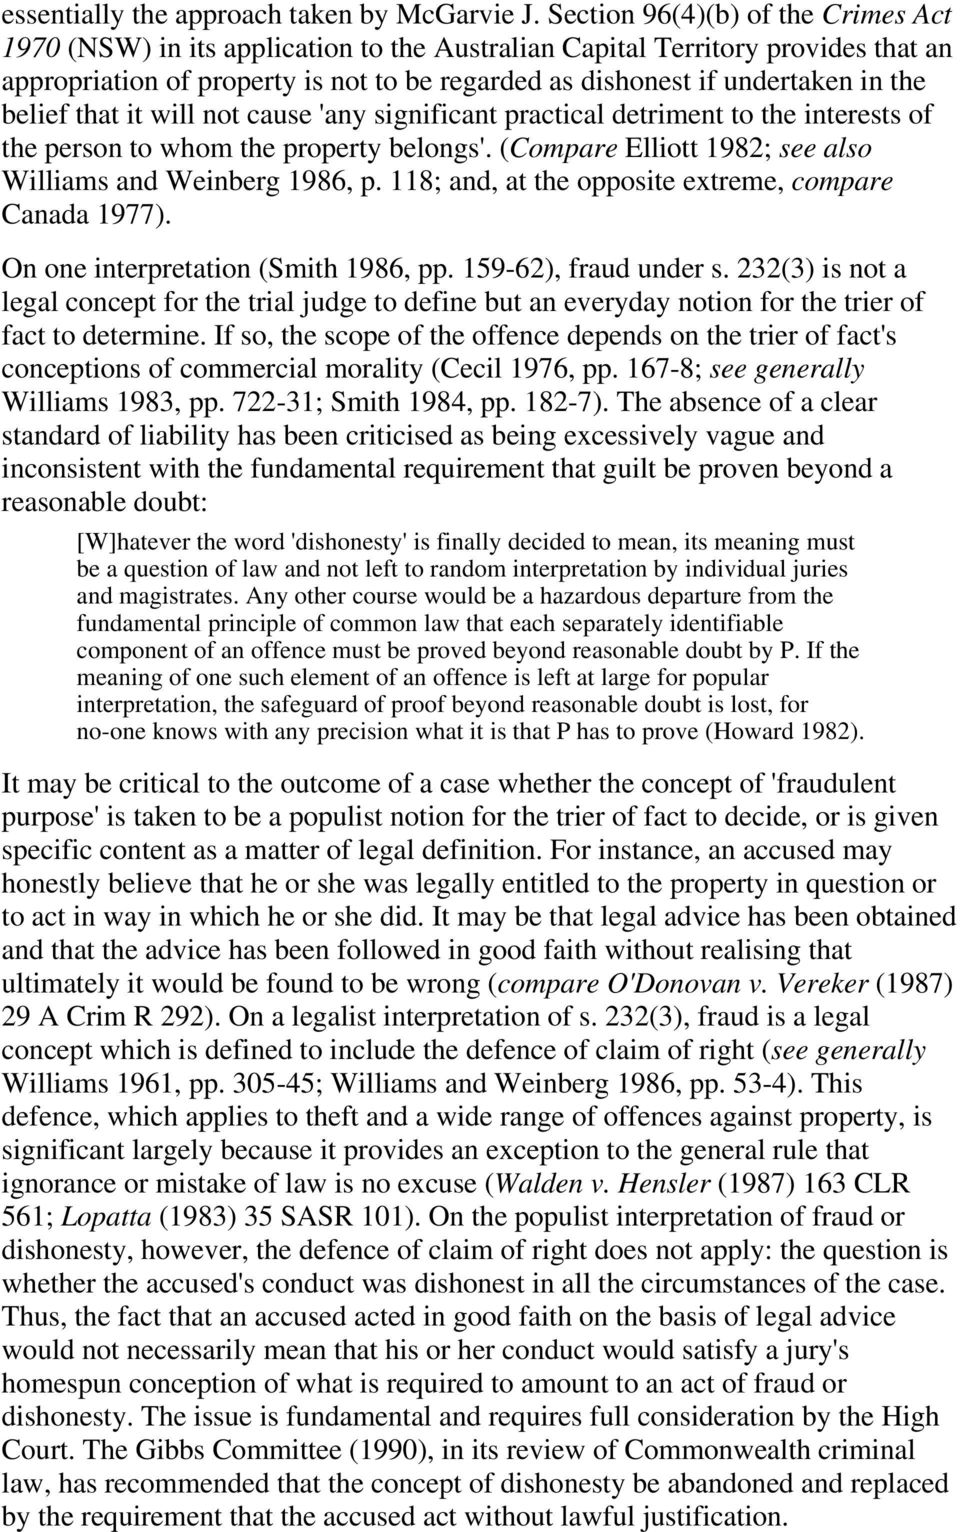 belief that it will not cause 'any significant practical detriment to the interests of the person to whom the property belongs'. (Compare Elliott 1982; see also Williams and Weinberg 1986, p.